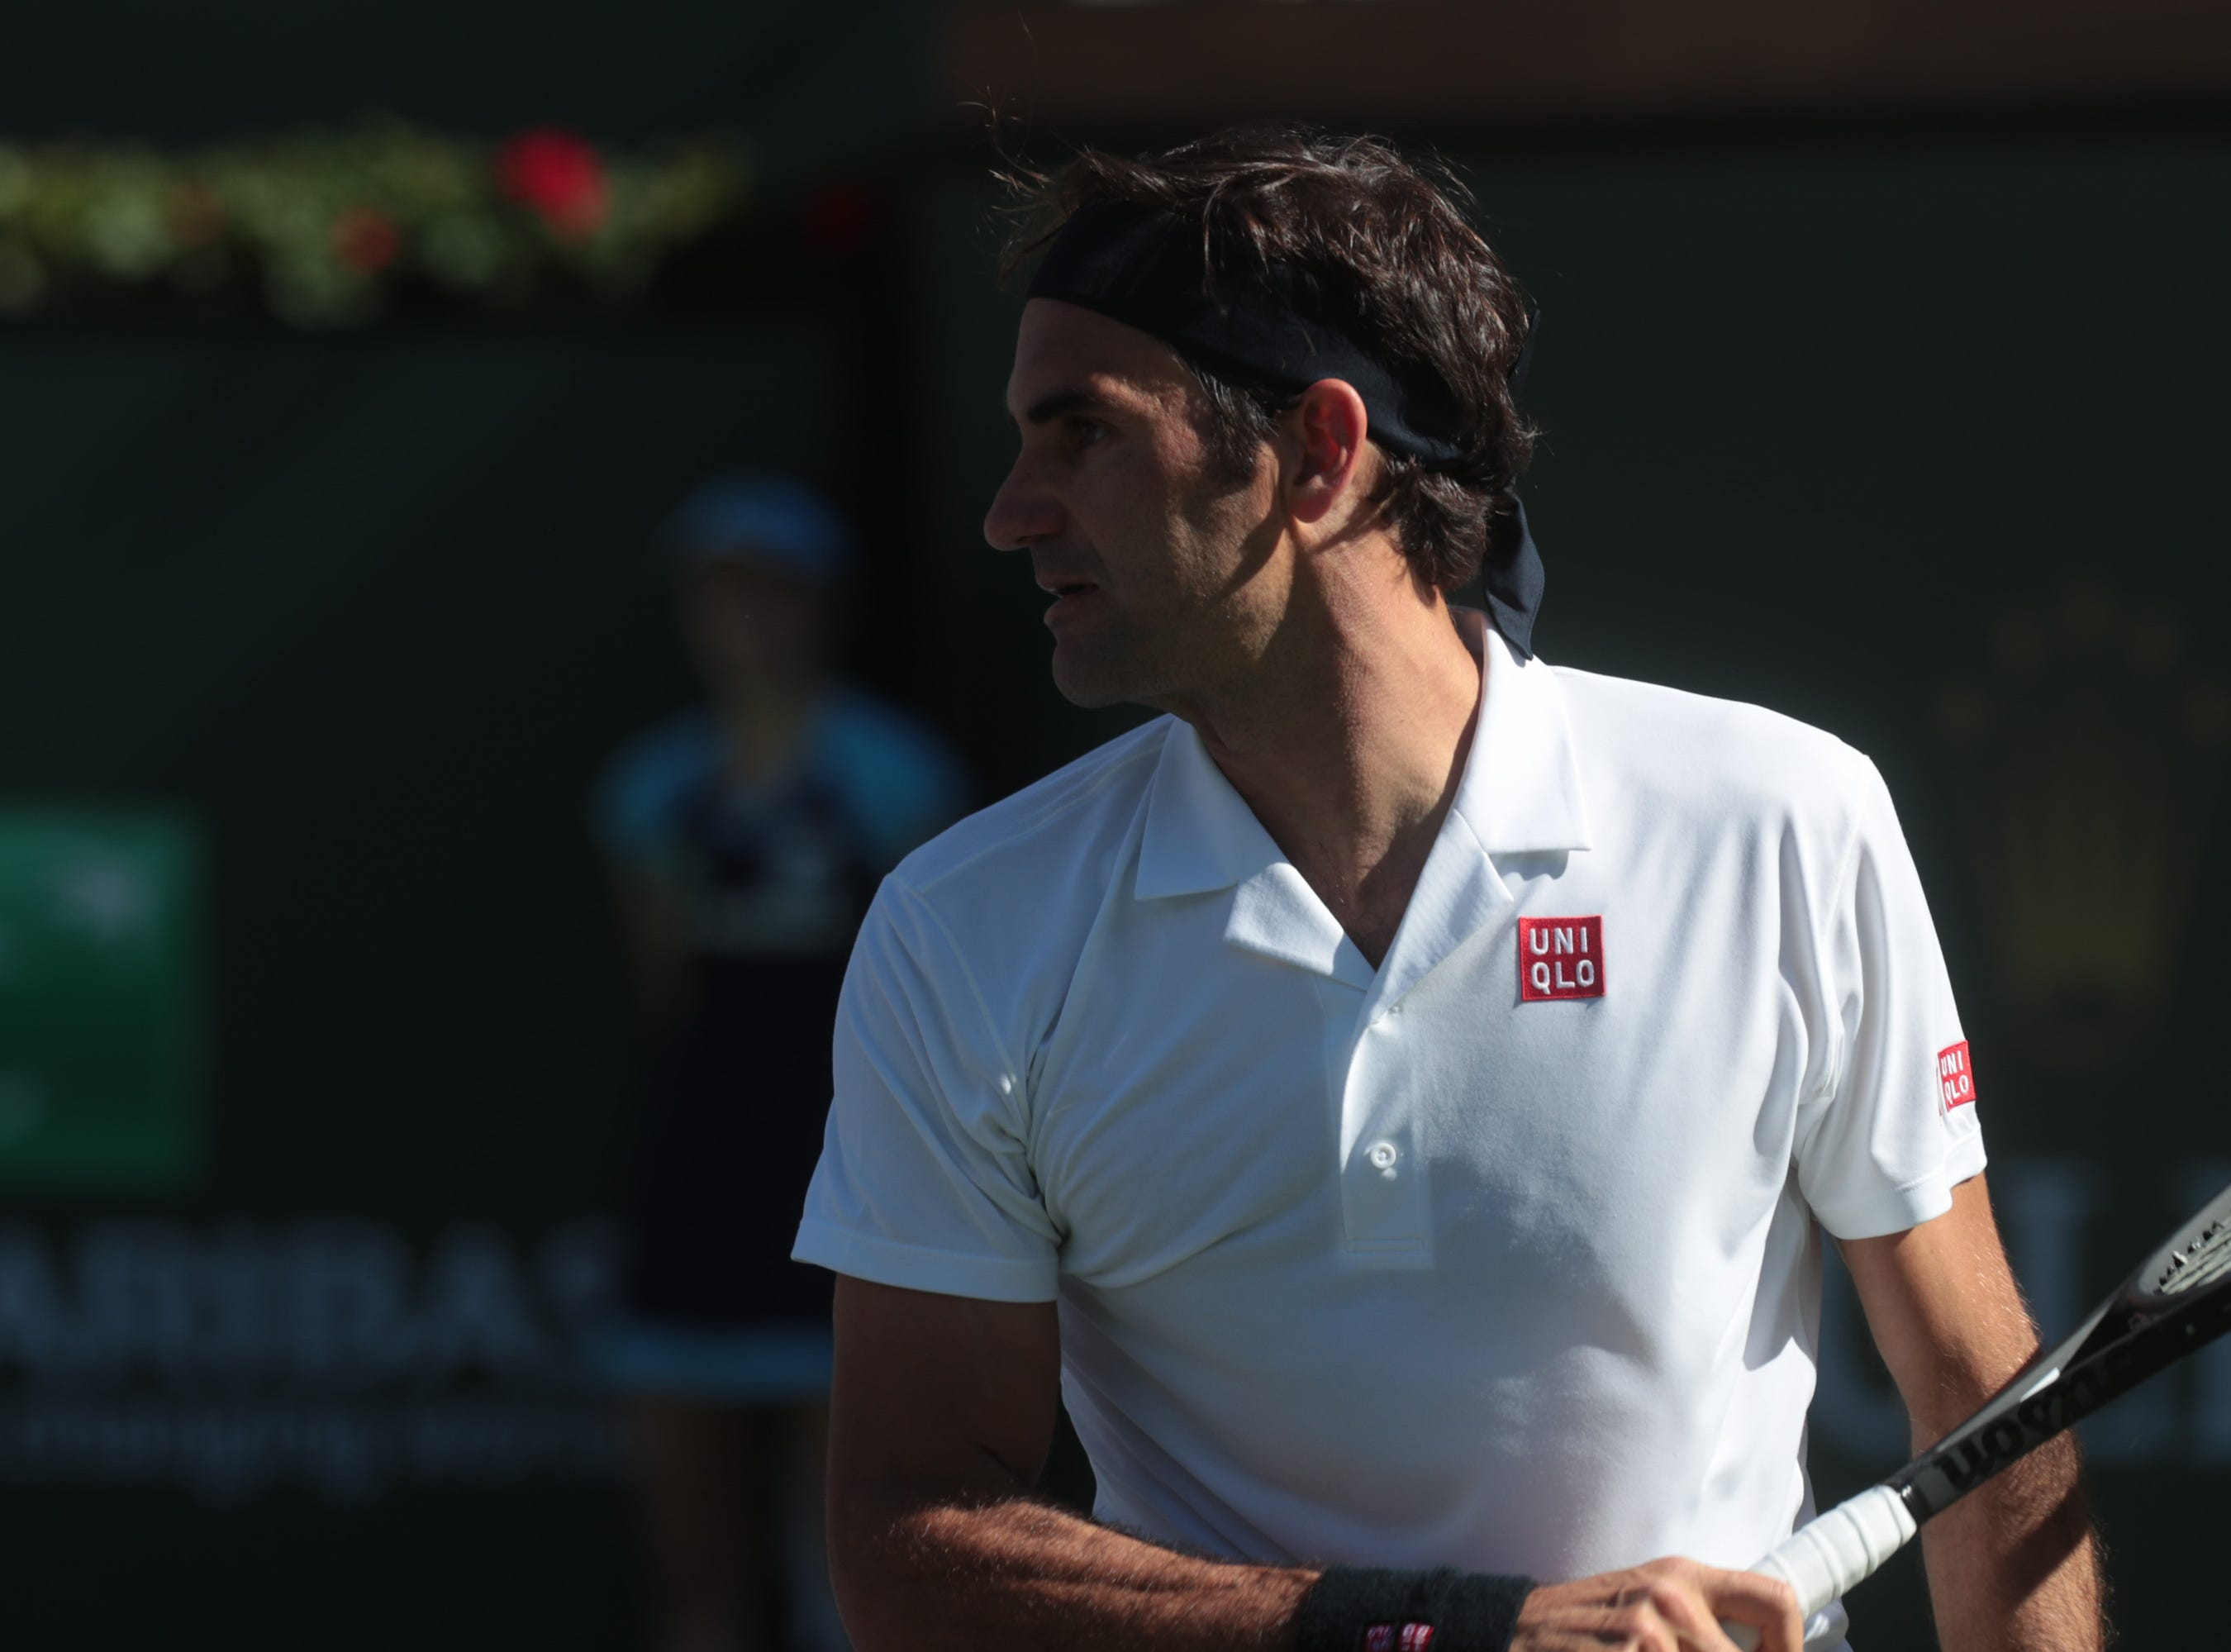 Roger Federer looks across the court towards Kyle Edmund in the second set of their match at the BNP Paribas Open in Indian Wells, Calif., March 13, 2019.